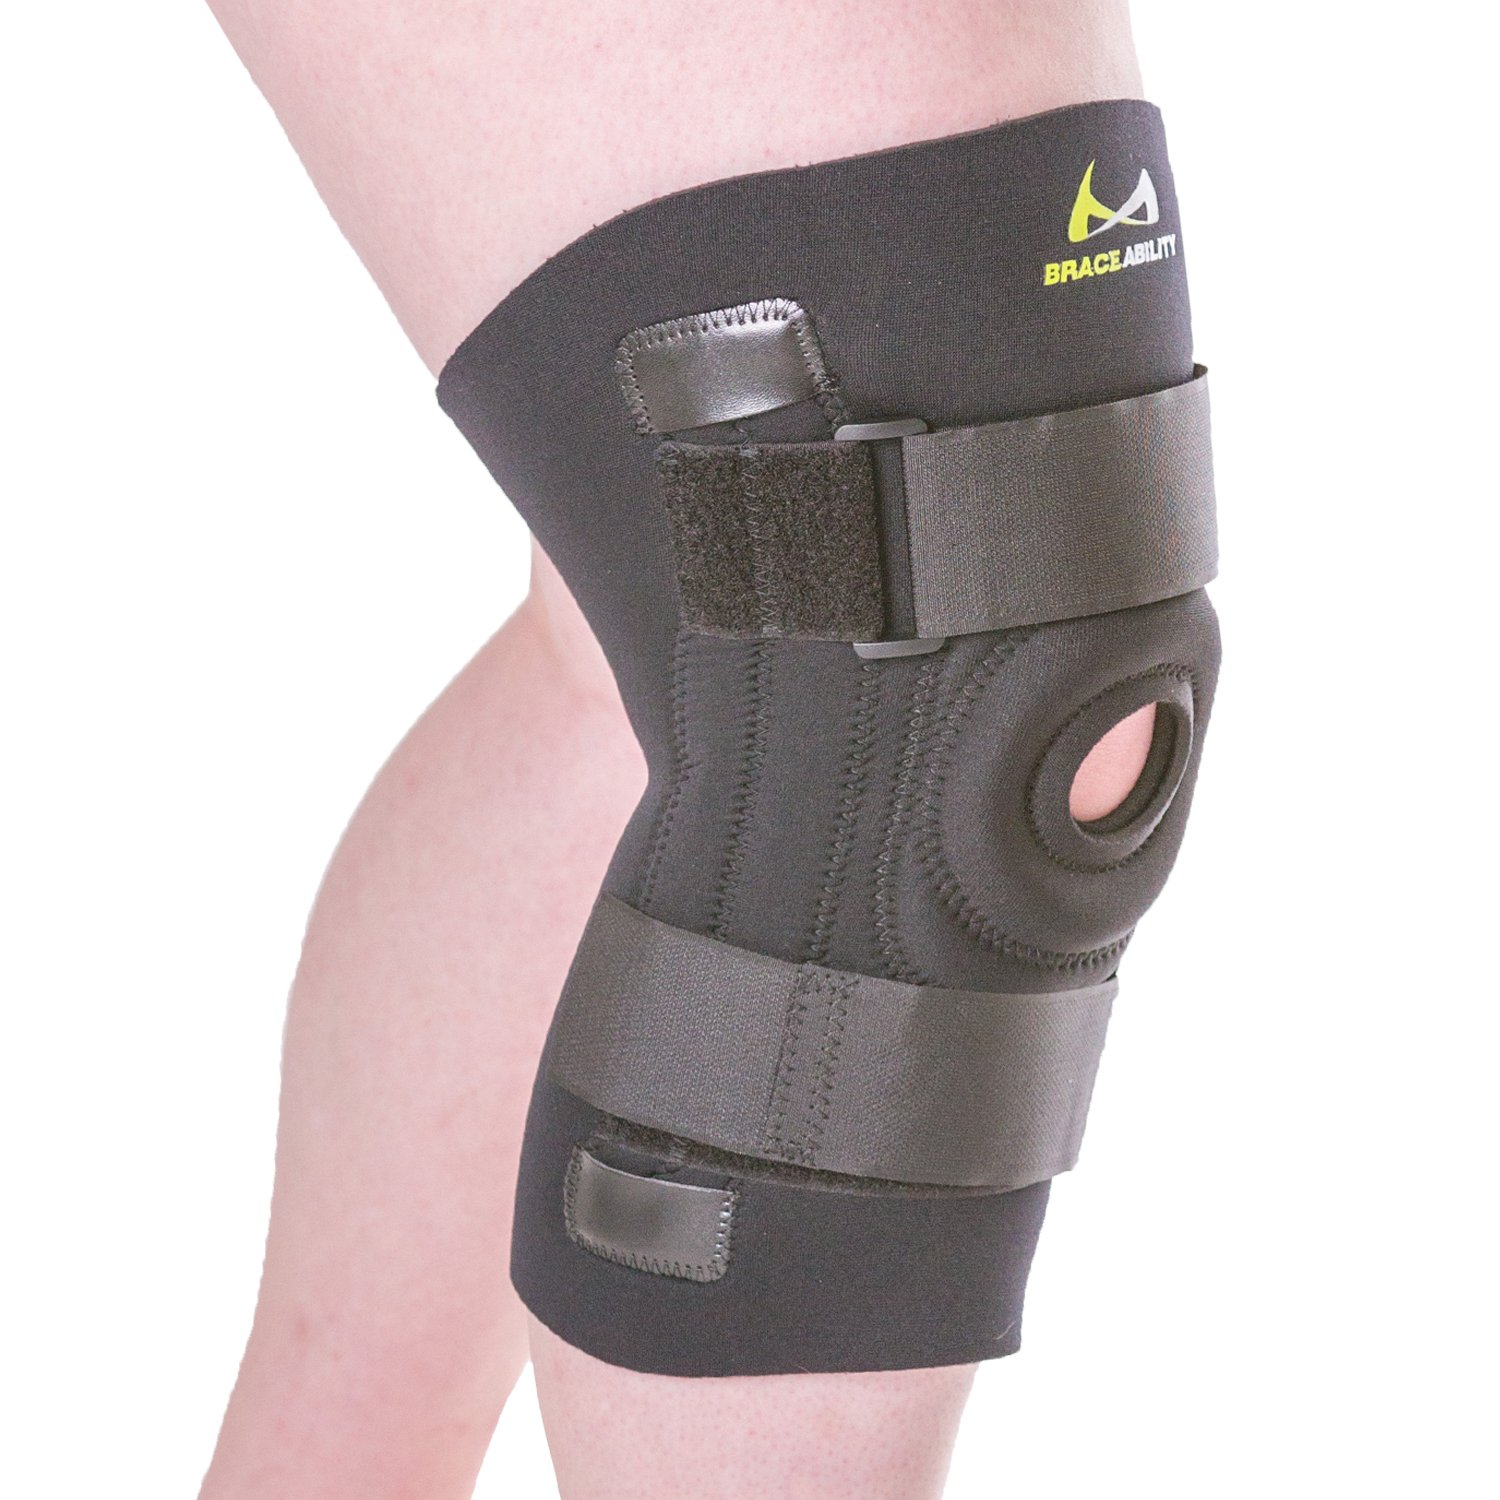 BraceAbility Knee Brace for Large Legs and Bigger People with Wide Thighs | Kneecap Protection Pad Treats Patellar Tendonitis, Chondromalacia, Patellofemoral Pain, Instability & Dislocation (4XL) by BraceAbility